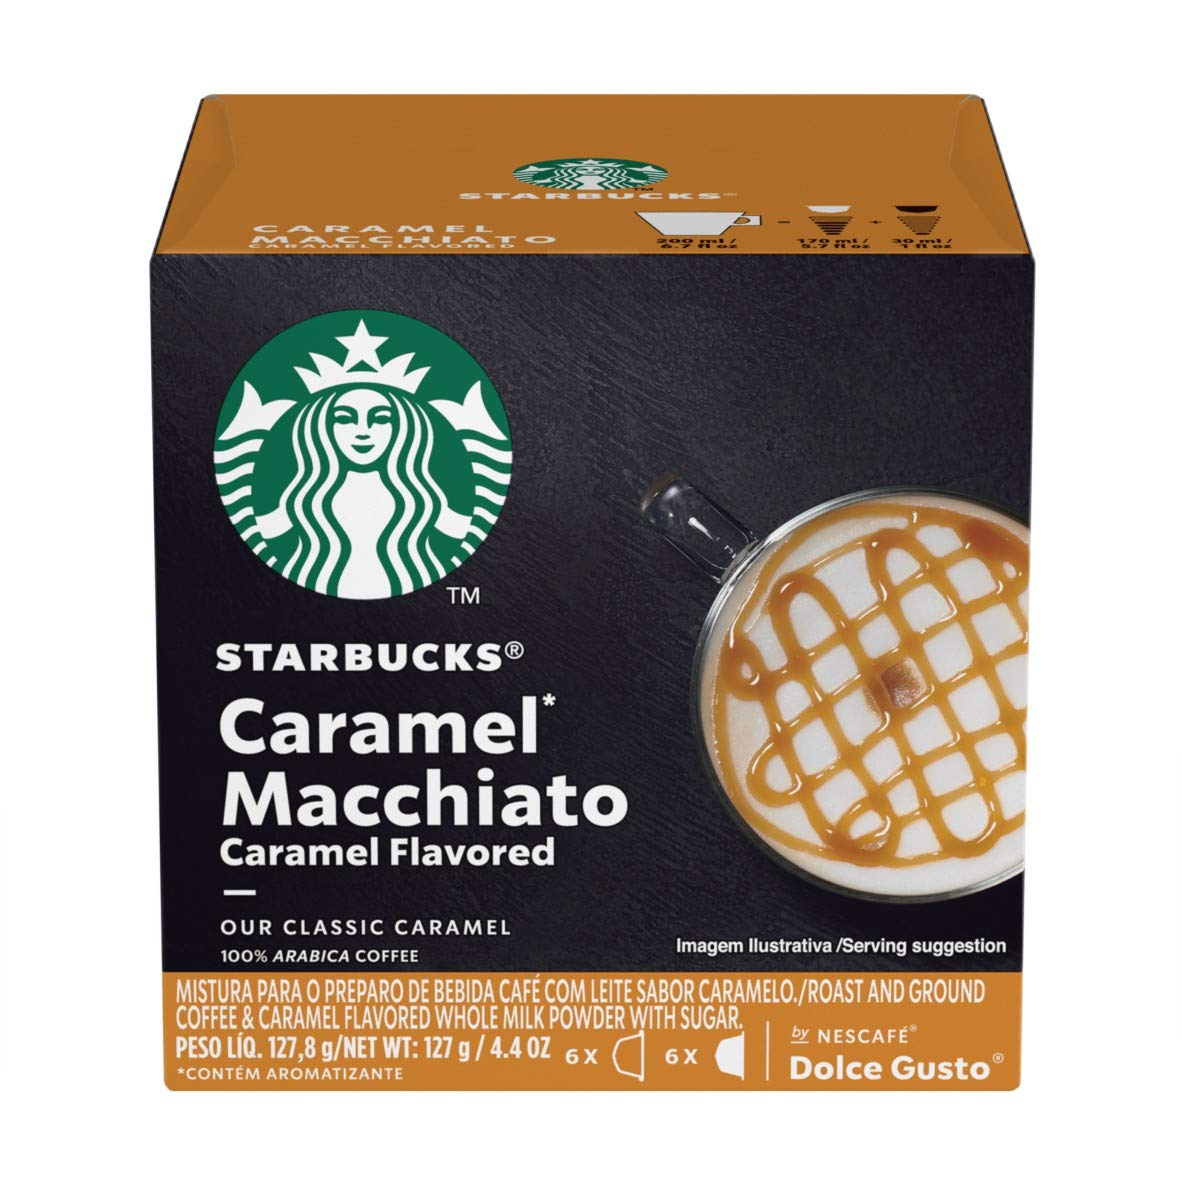 Starbucks Coffee by Nescafe Dolce Gusto, Starbucks Caramel Macchiato, Coffee Pods, 12 capsules, Pack of 3